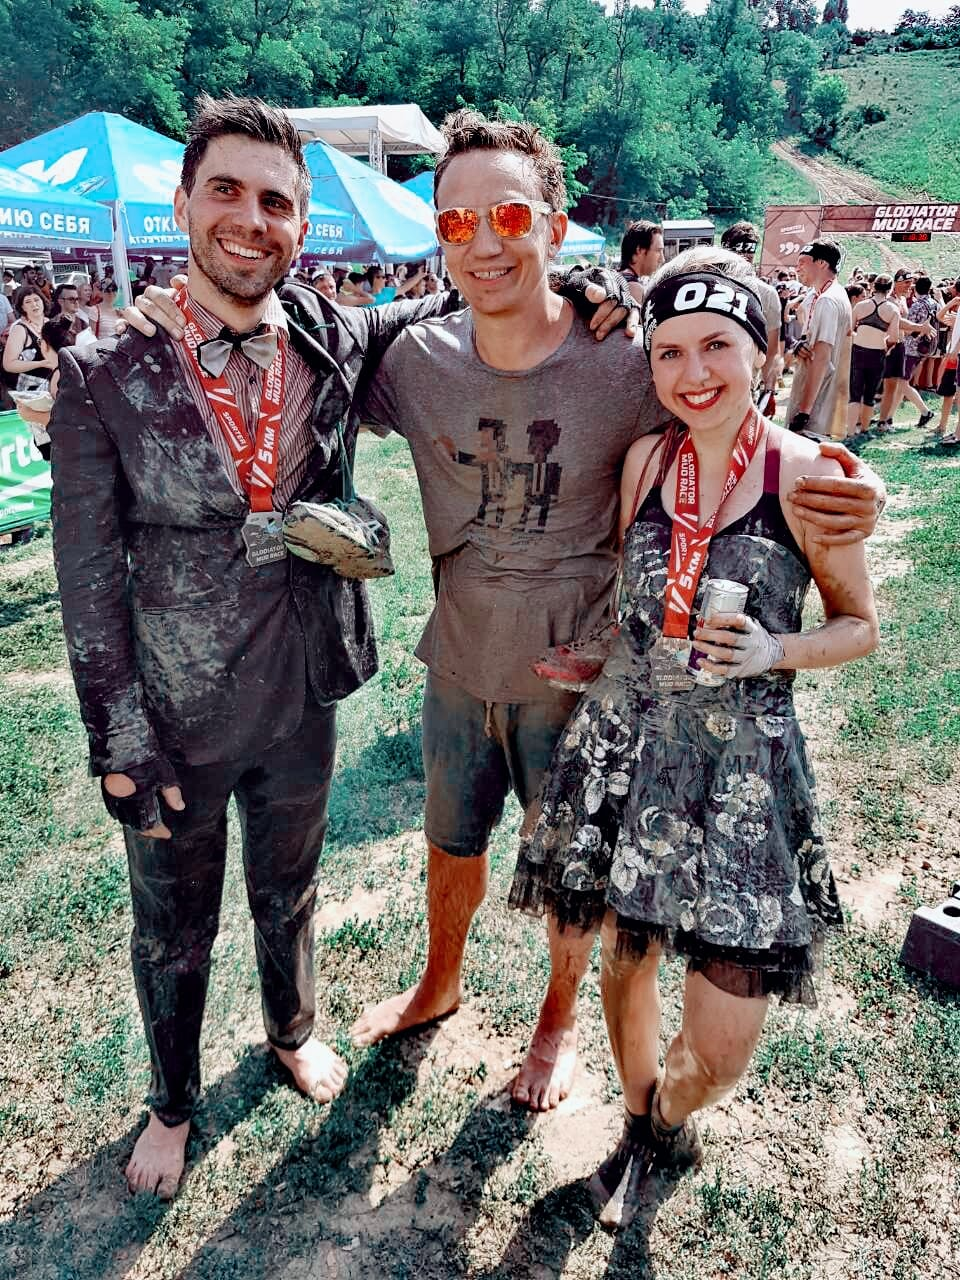 Opinion mud run orgies sorry